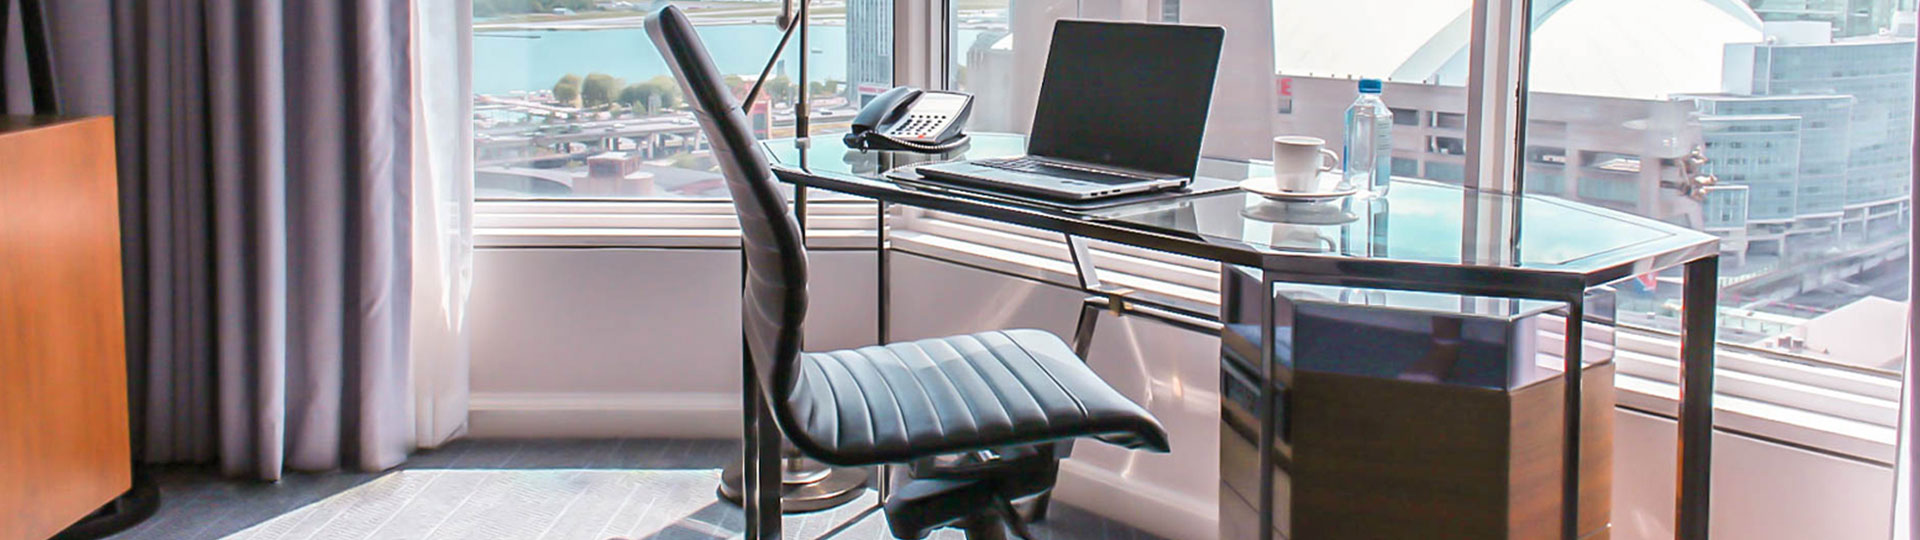 Work from Hotel Package at Ontario Hotel